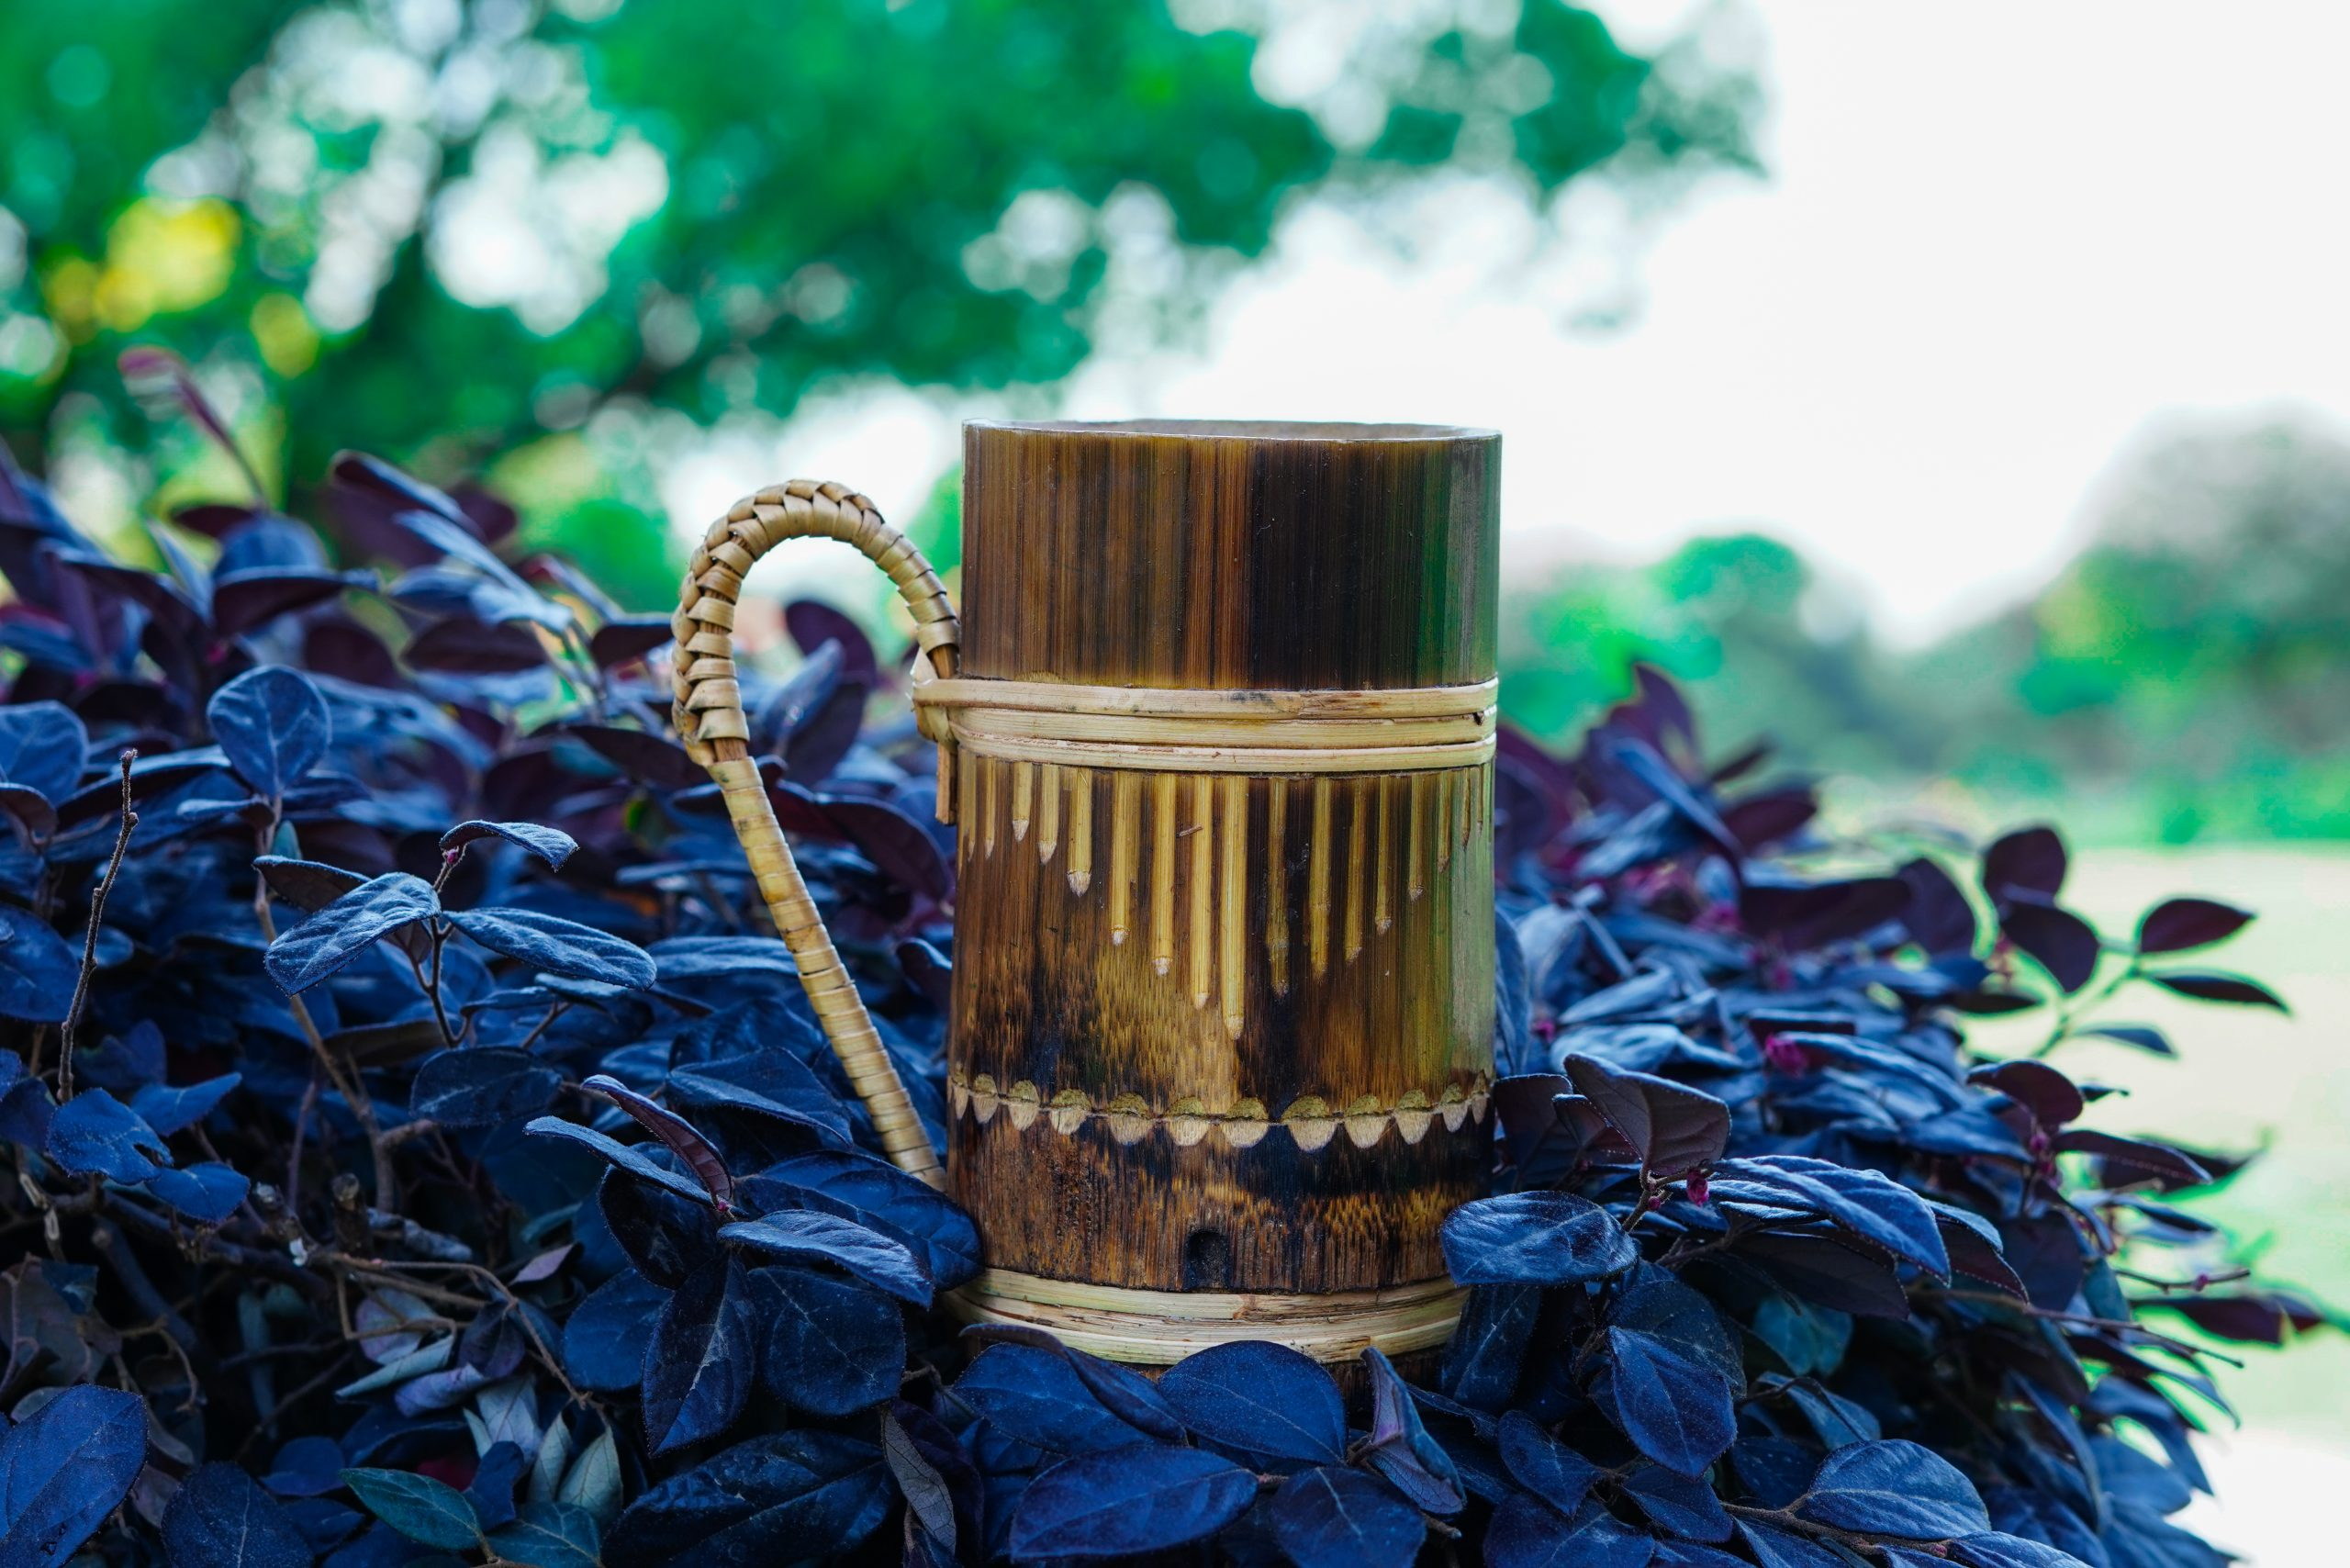 Wooden mug on the plant leaves